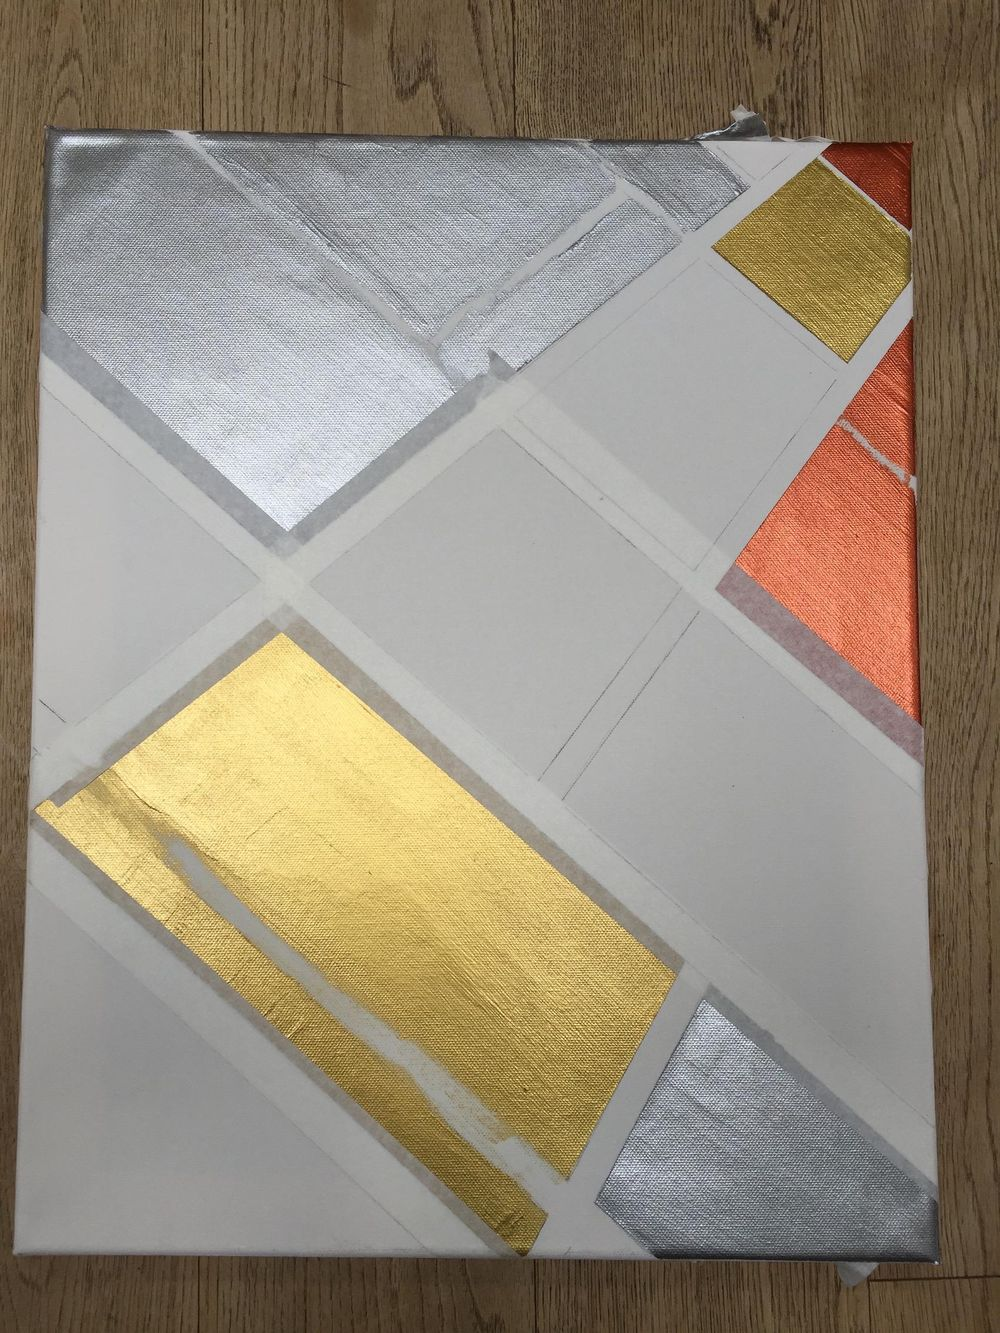 MONDRIAN & ON - image 5 - student project